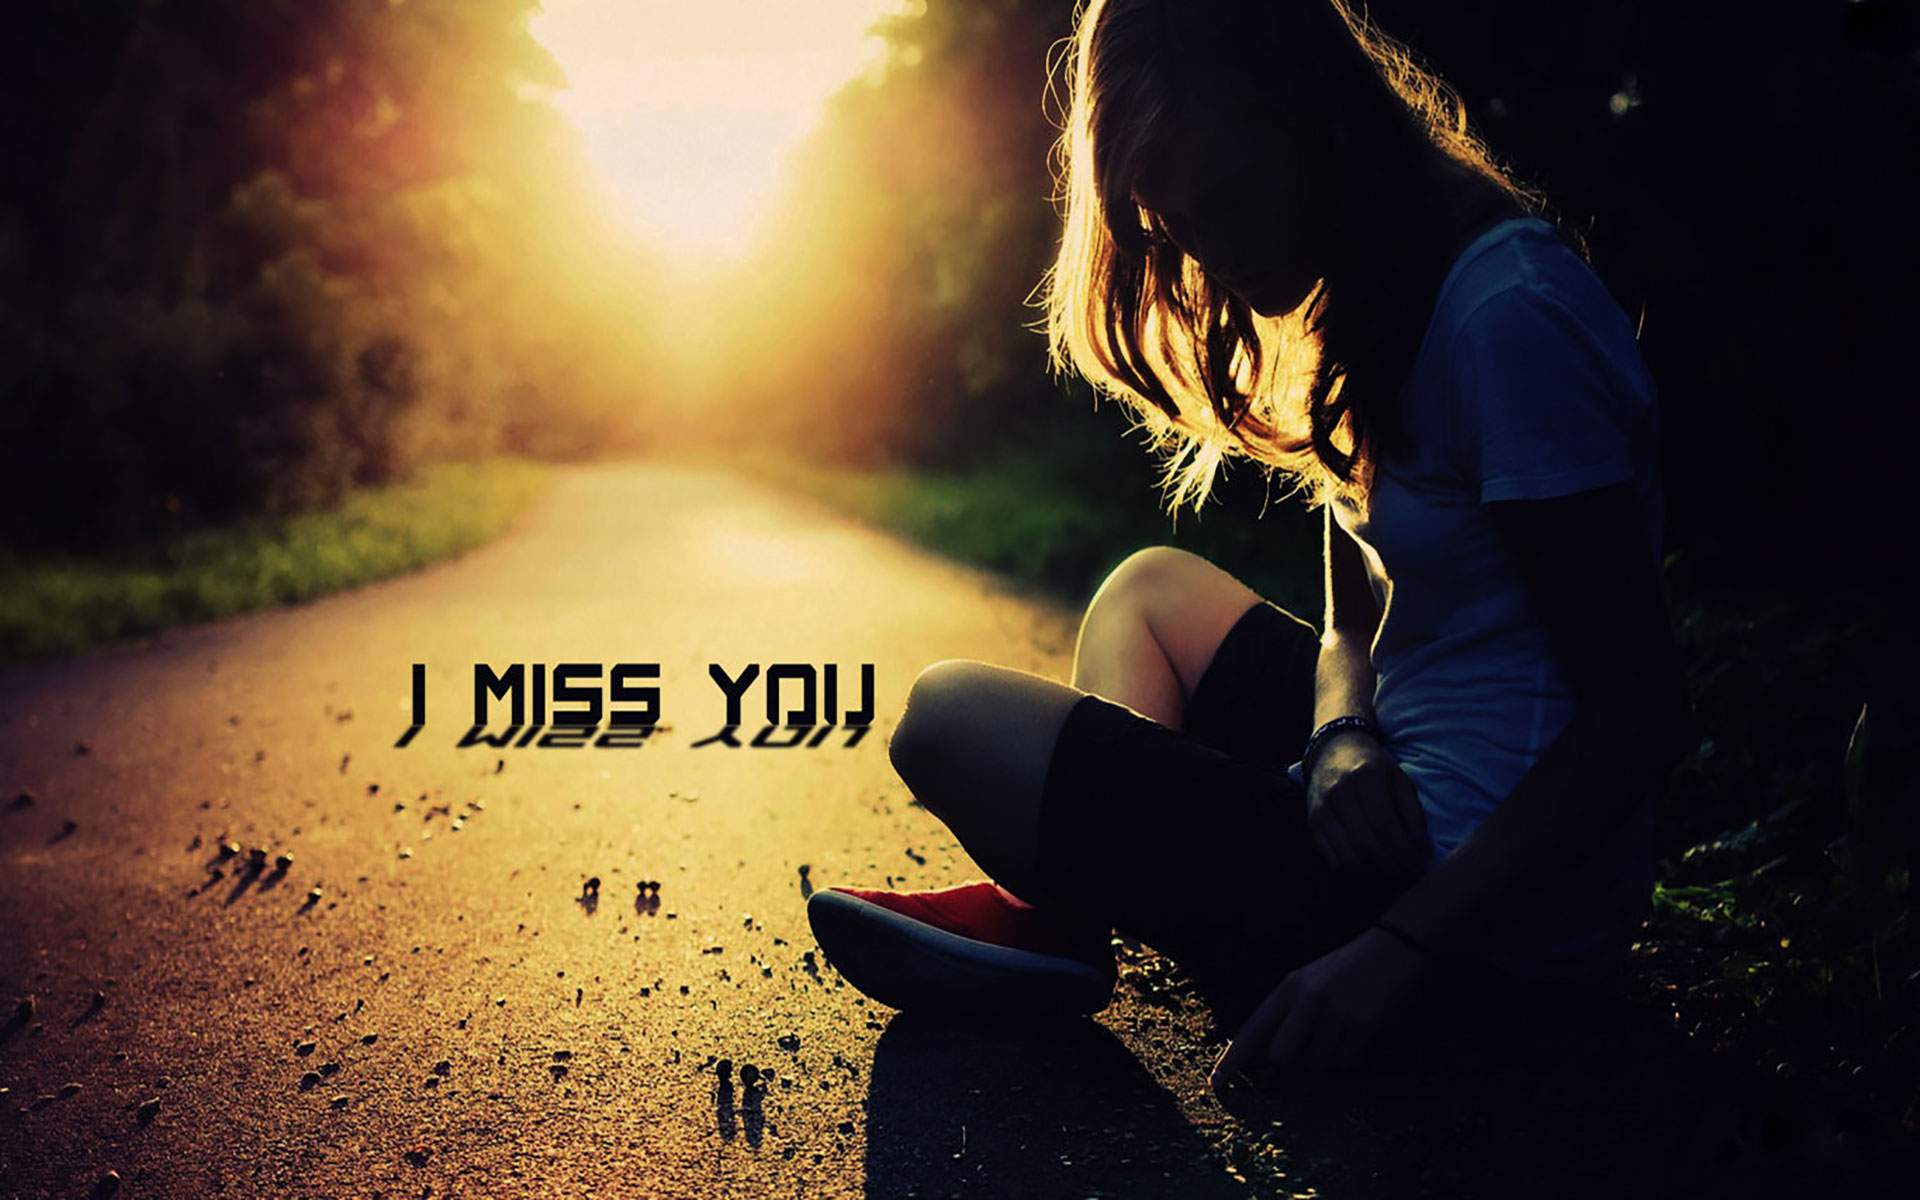 Love couple Miss U Wallpaper : HD I Miss You Wallpaper for him or herRomantic Wallpaperschobirdokan